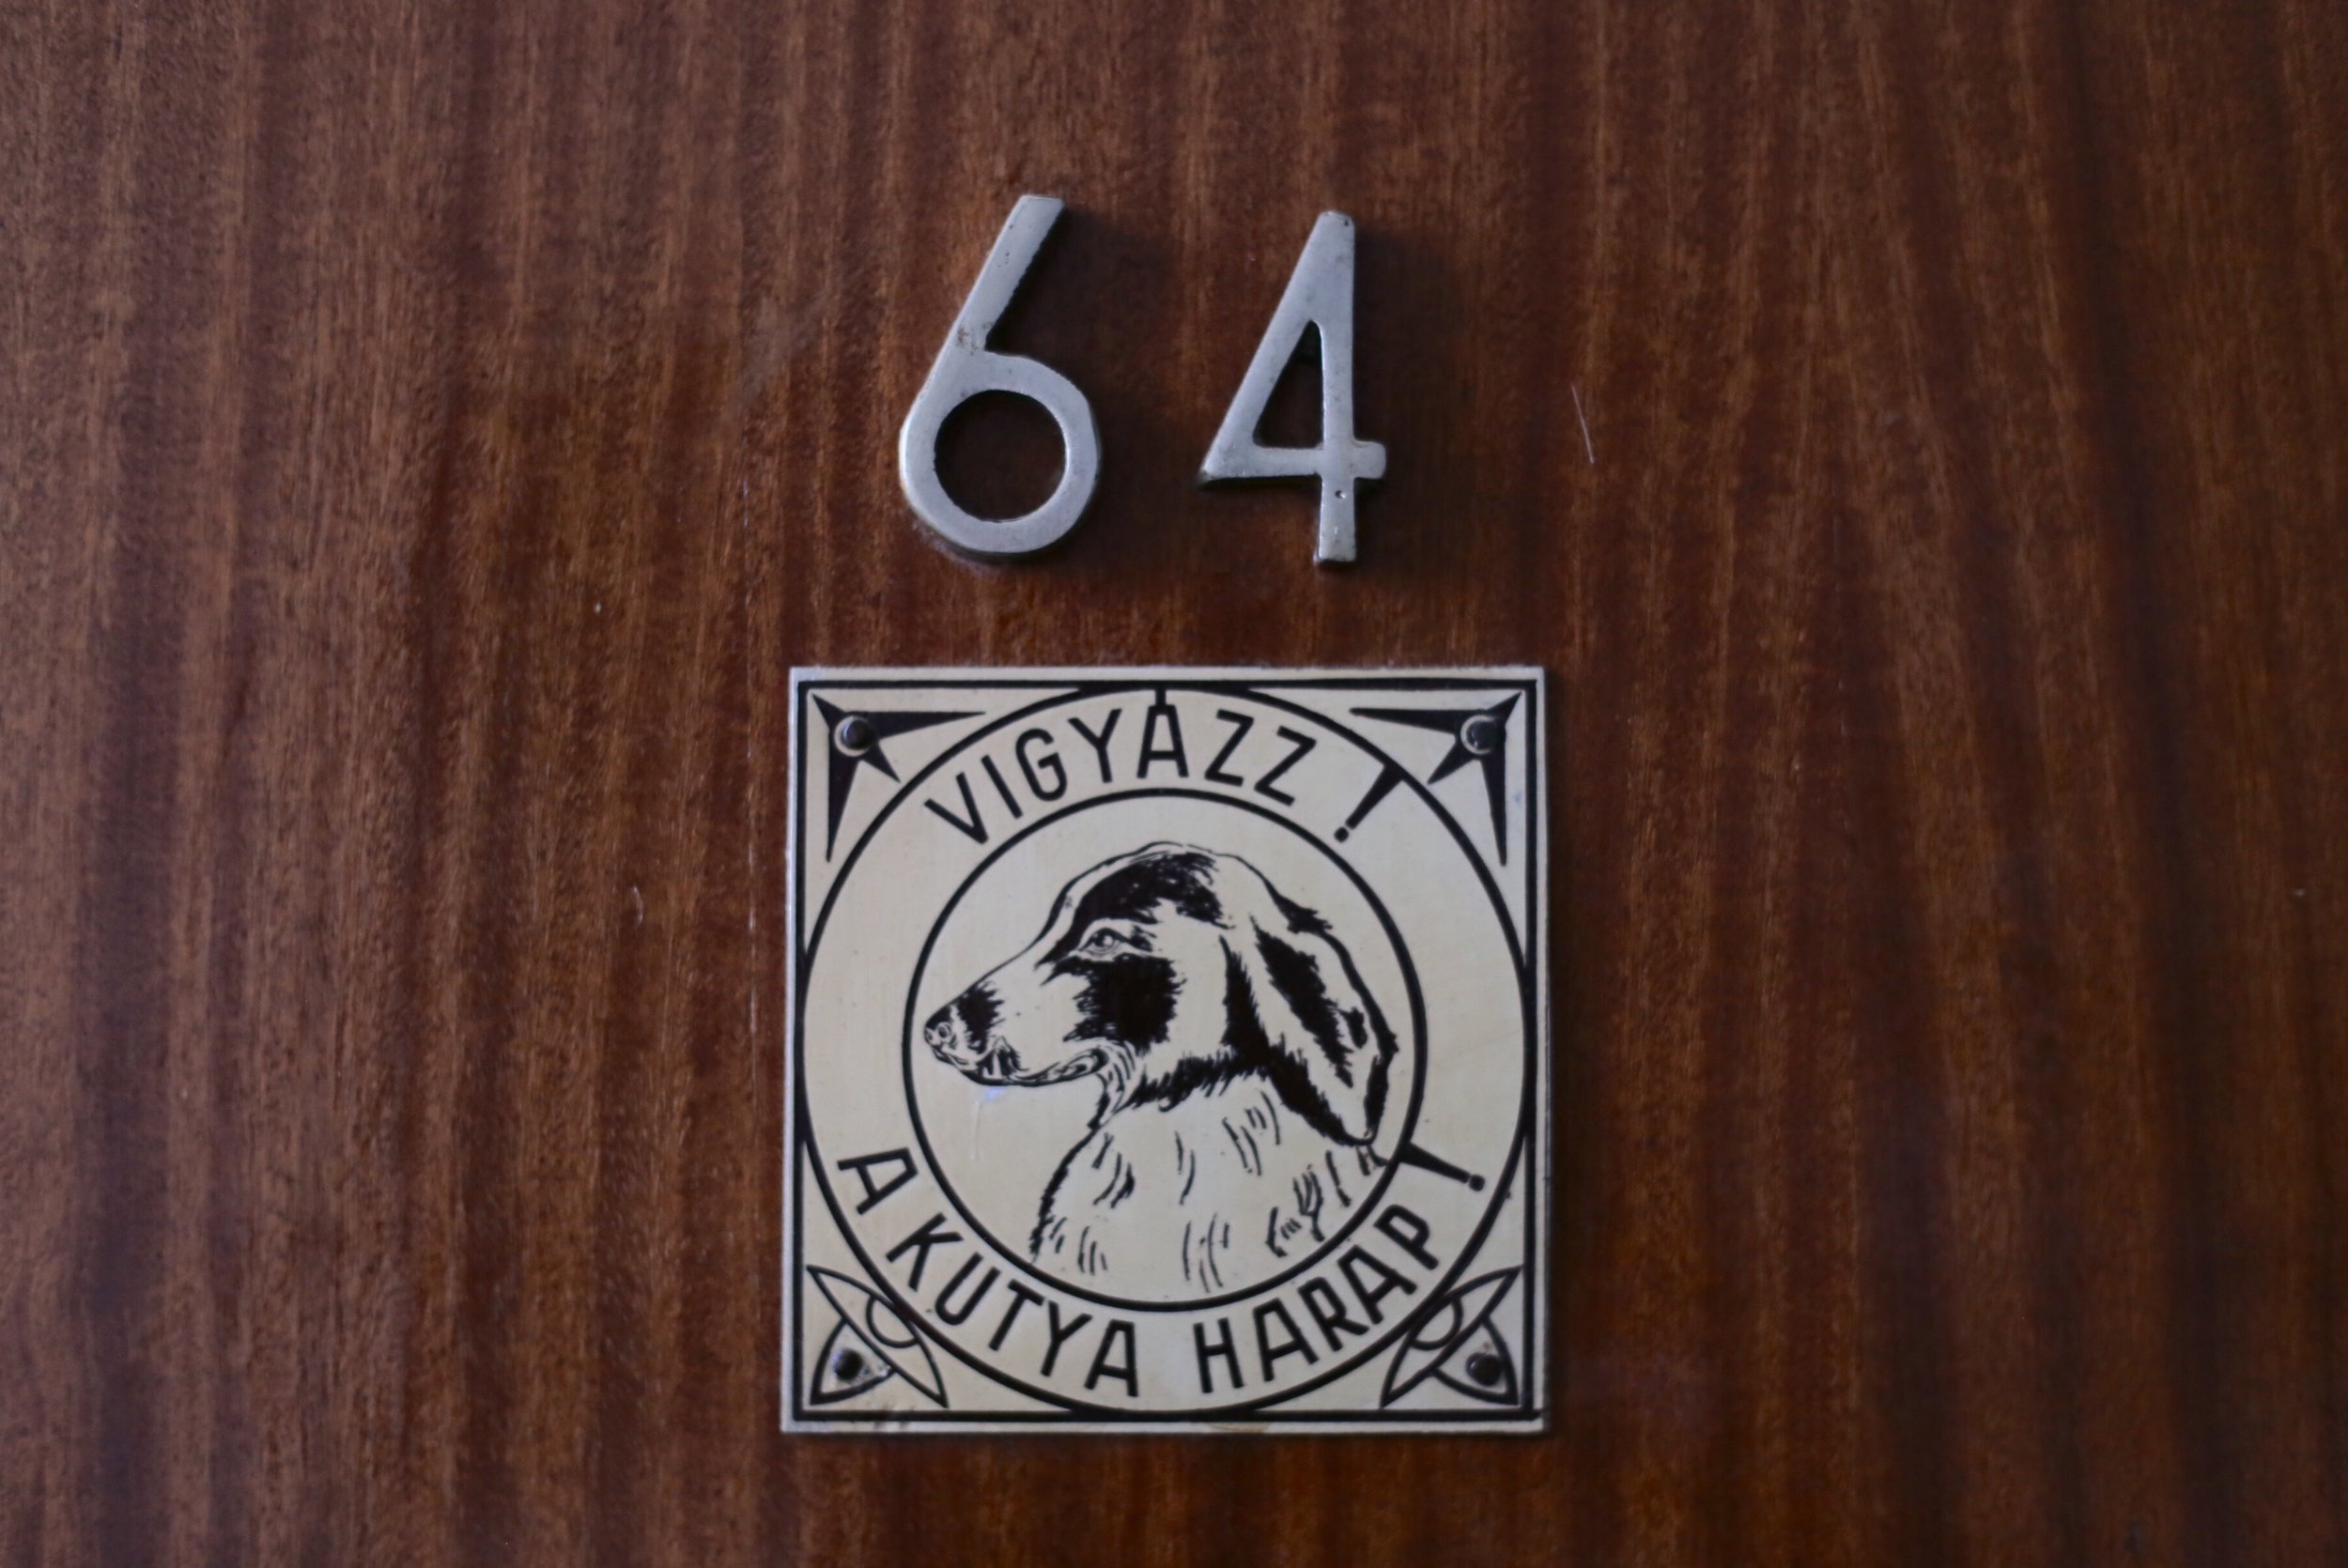 Door number 64 has a plaque with a dog engraving.